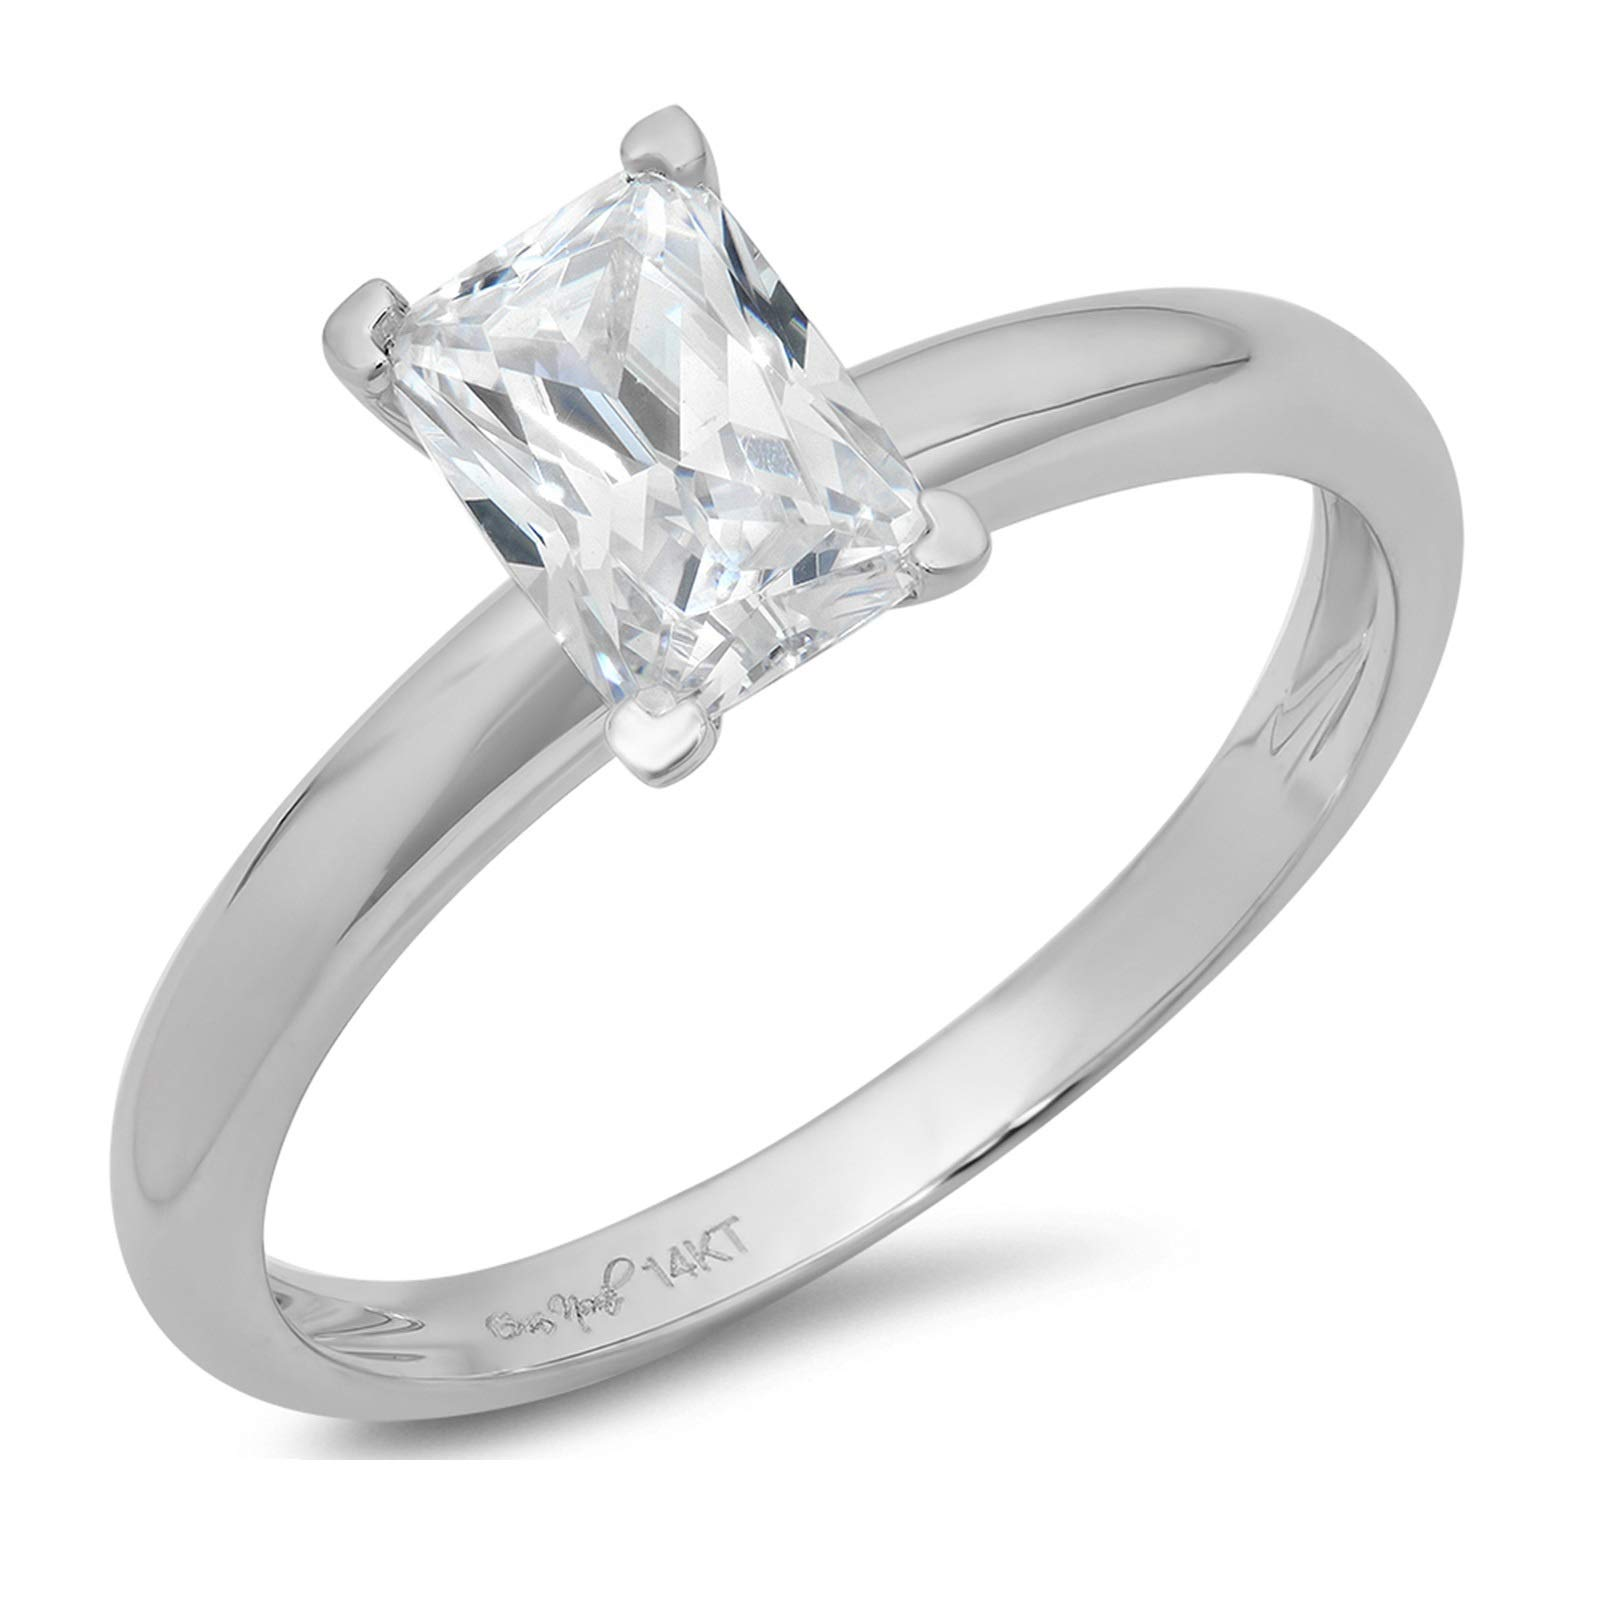 0.9ct Brilliant Emerald Cut Solitaire Highest Quality Lab Created White Sapphire Ideal VVS1 D 4-Prong Engagement Wedding Bridal Promise Anniversary Ring Solid Real 14k White Gold for Women